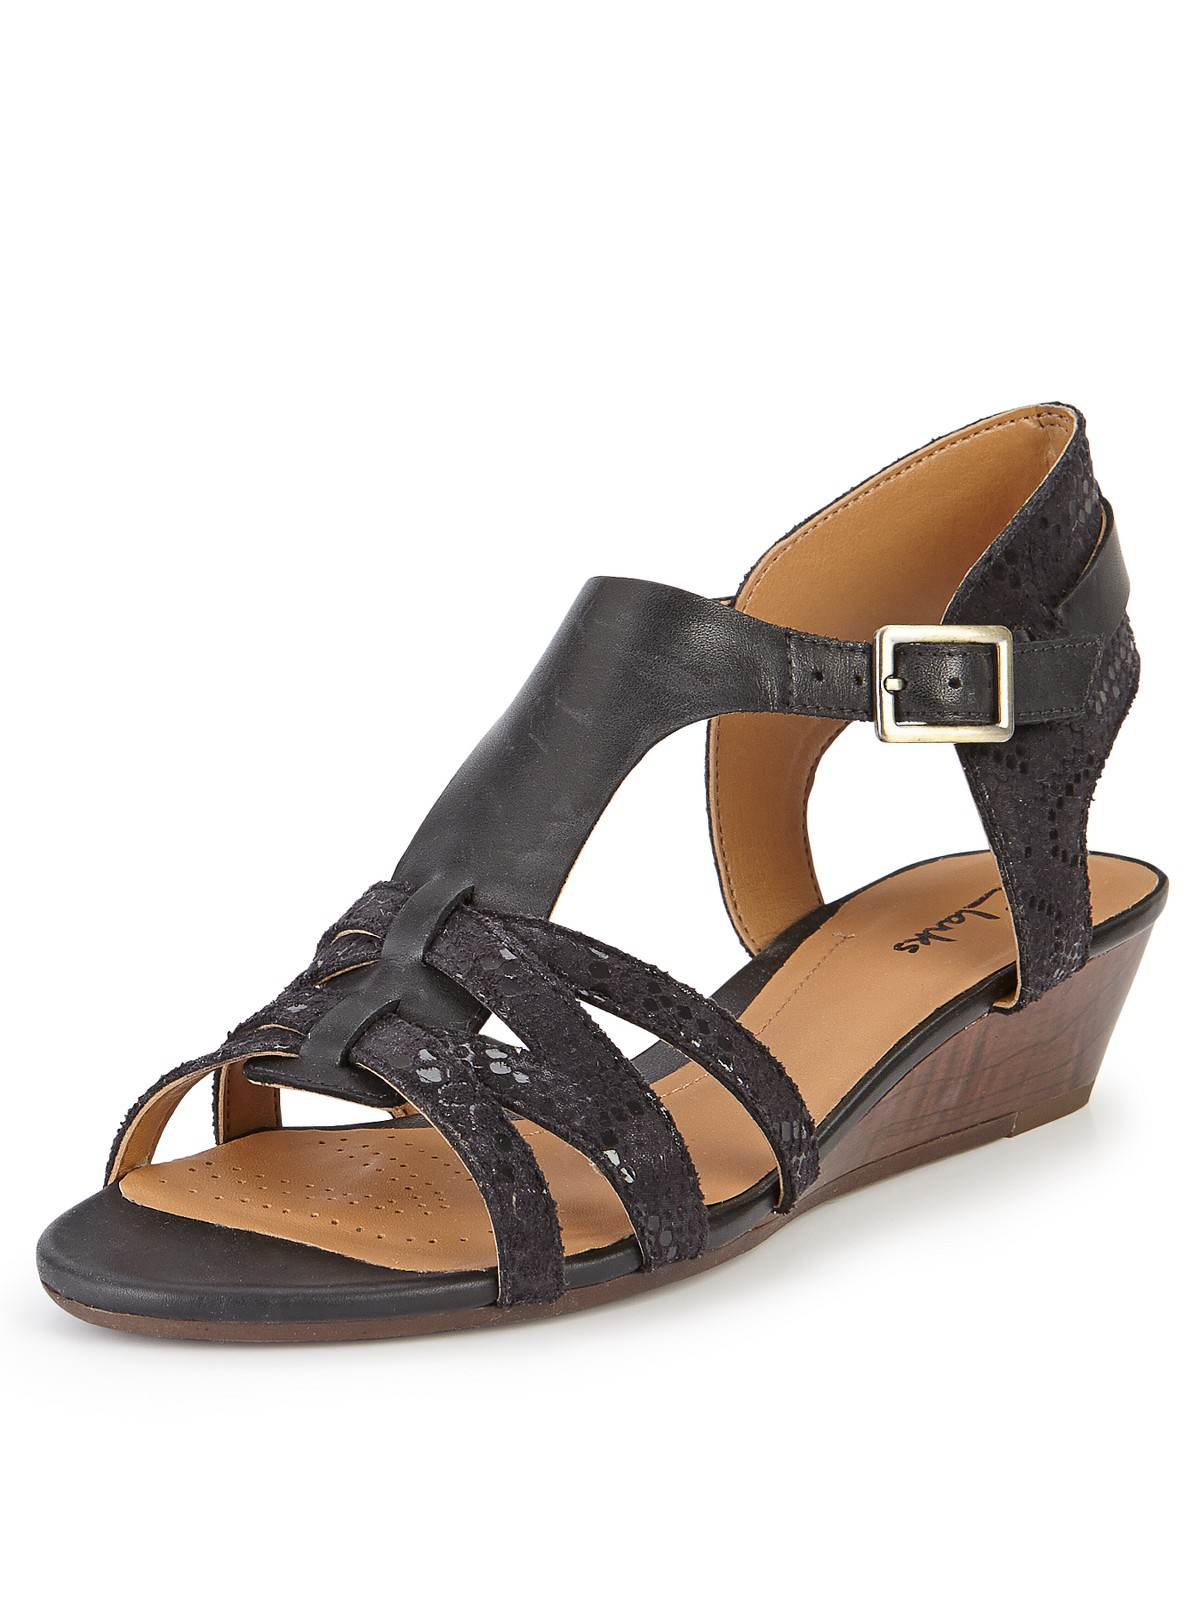 Clarks Playful Club Low Wedge Sandals in Black (black ...